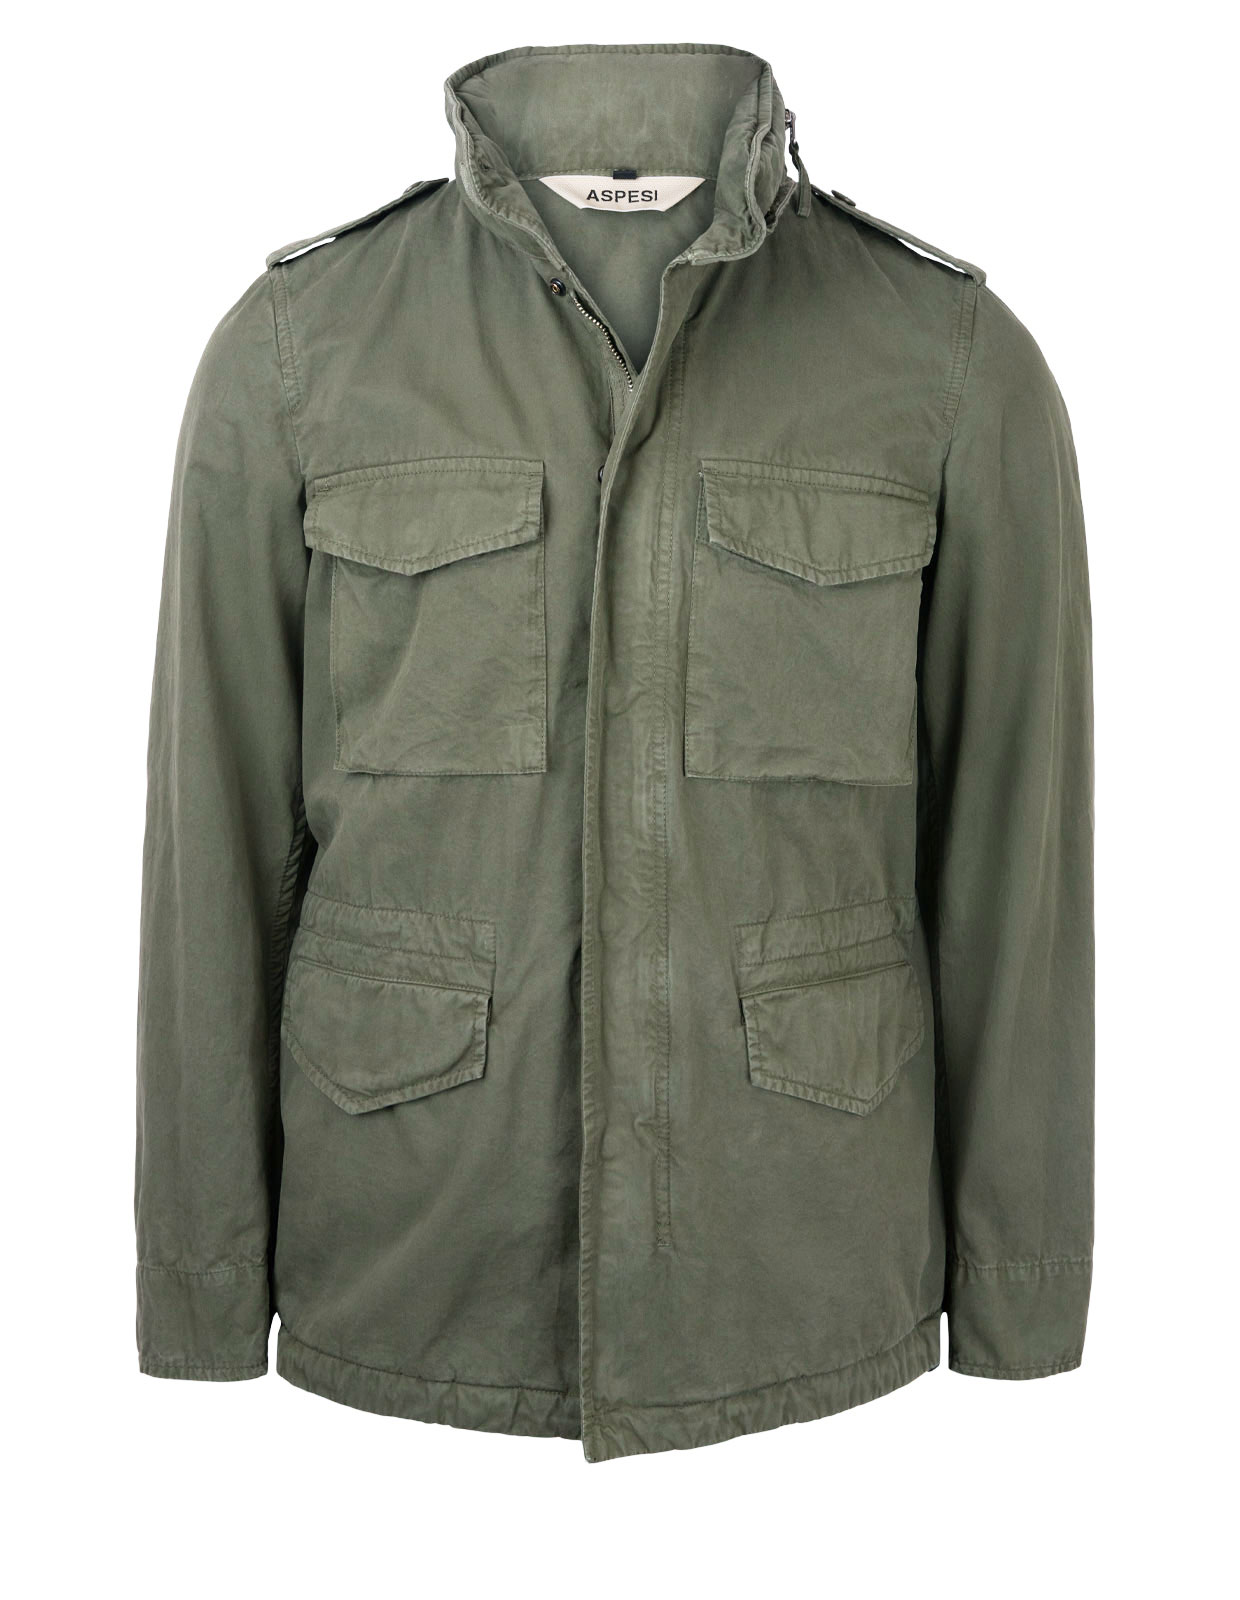 Field Jacket CG20 M65 Cotton Green